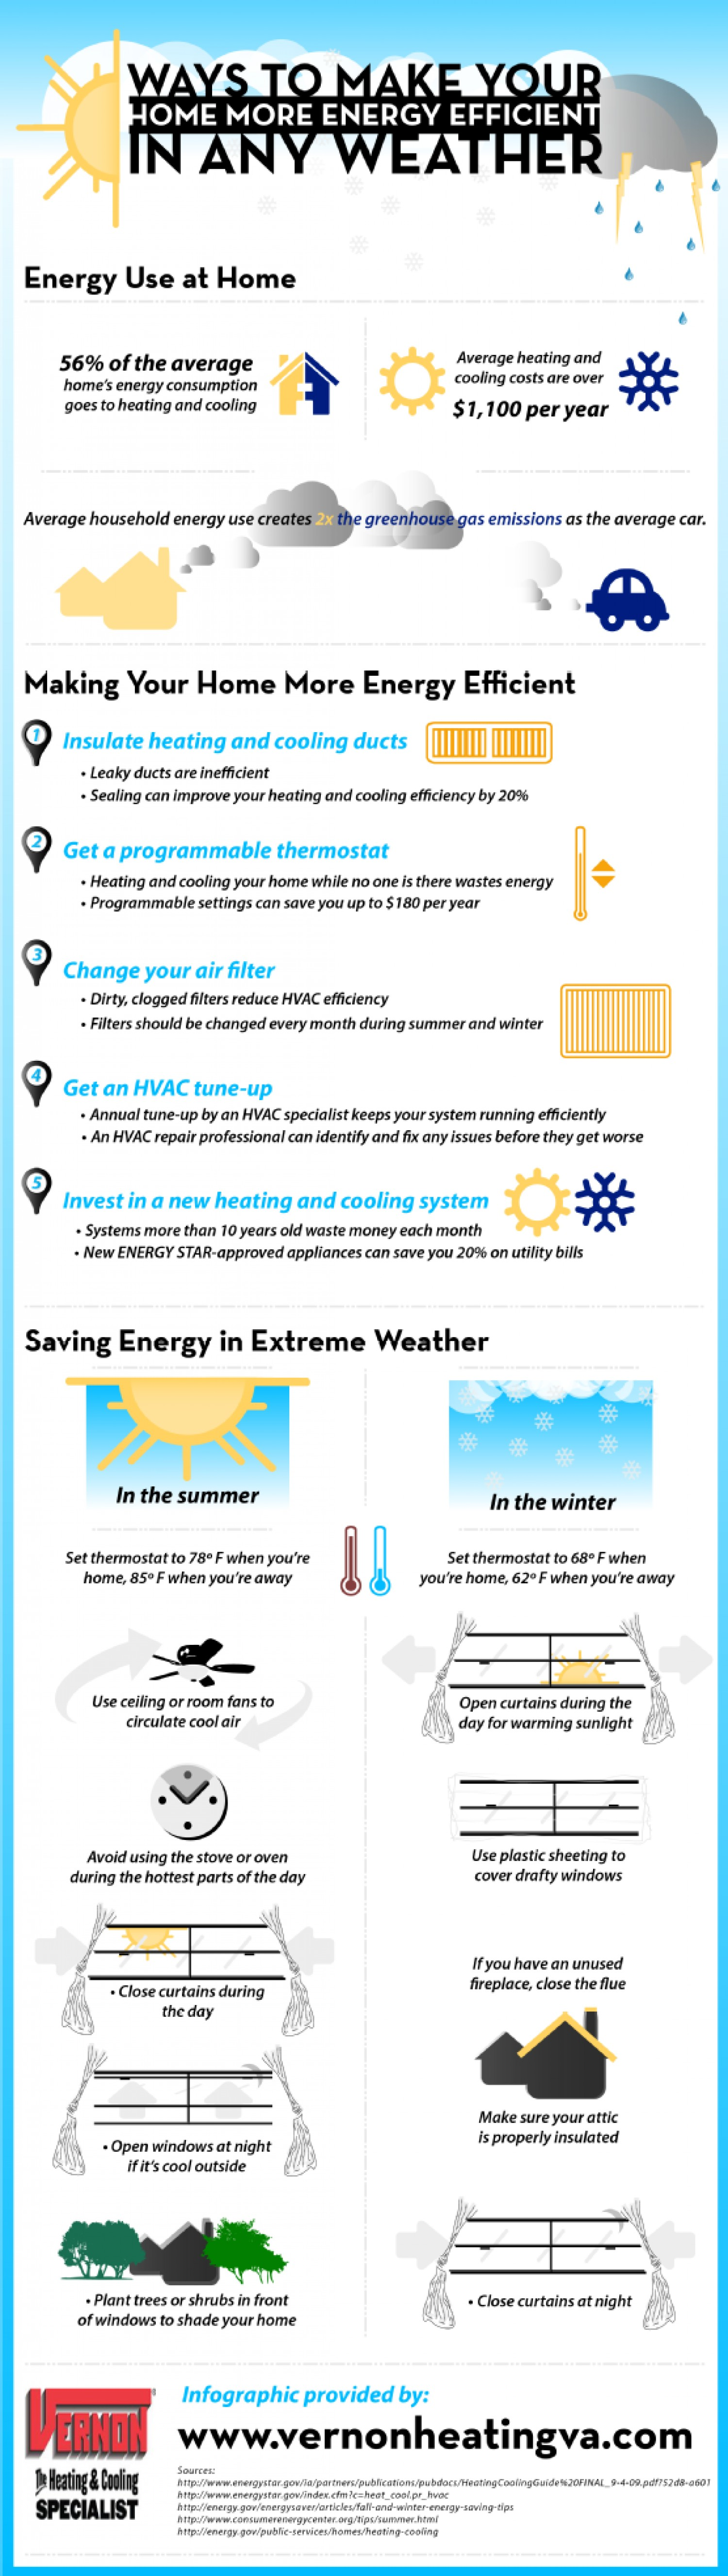 Energy Efficiency in any Weather